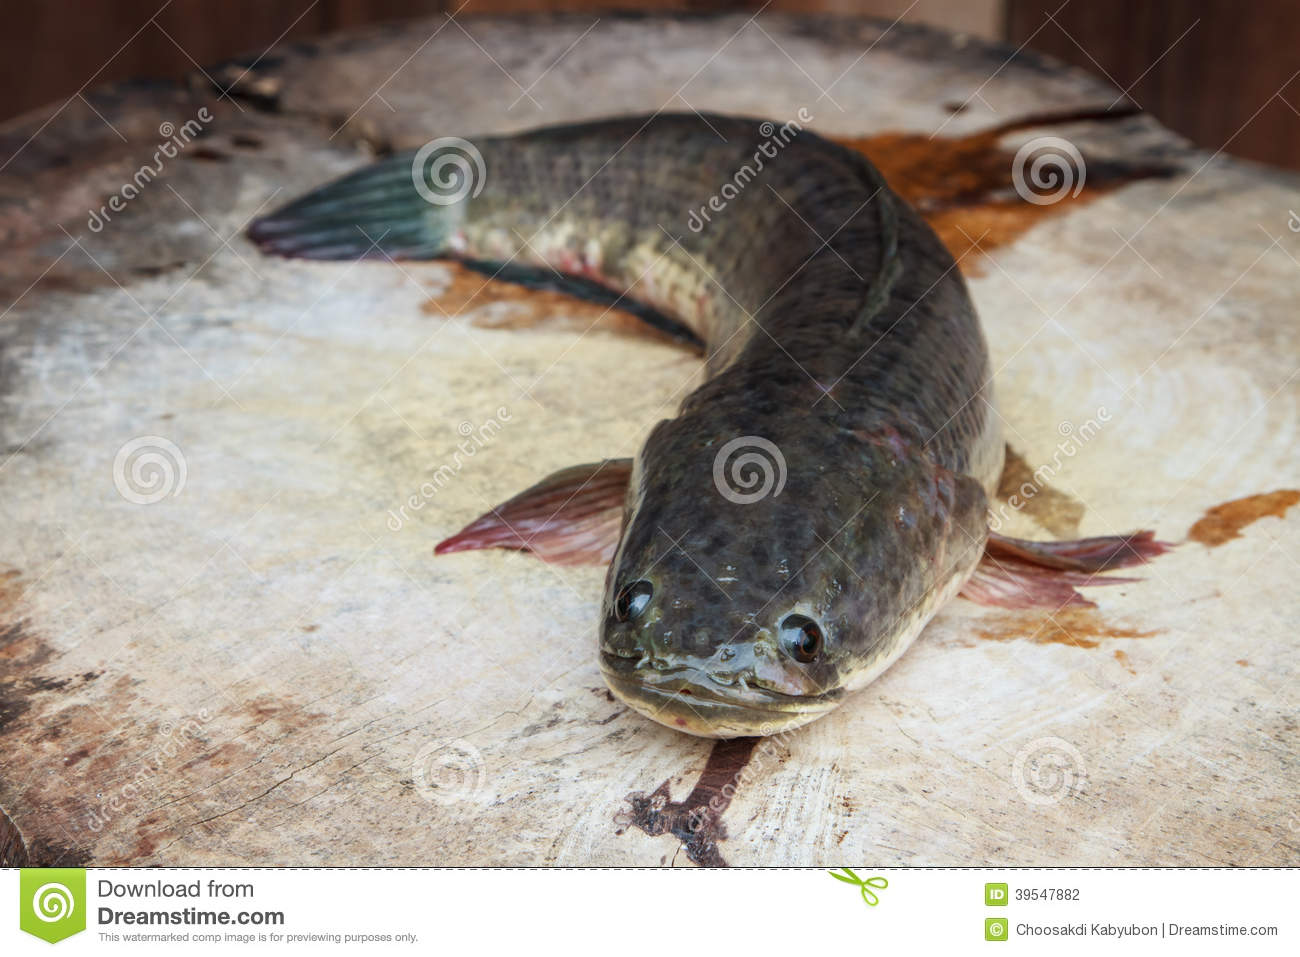 Fresh water fish stock photo image 39547882 for Is fish considered meat